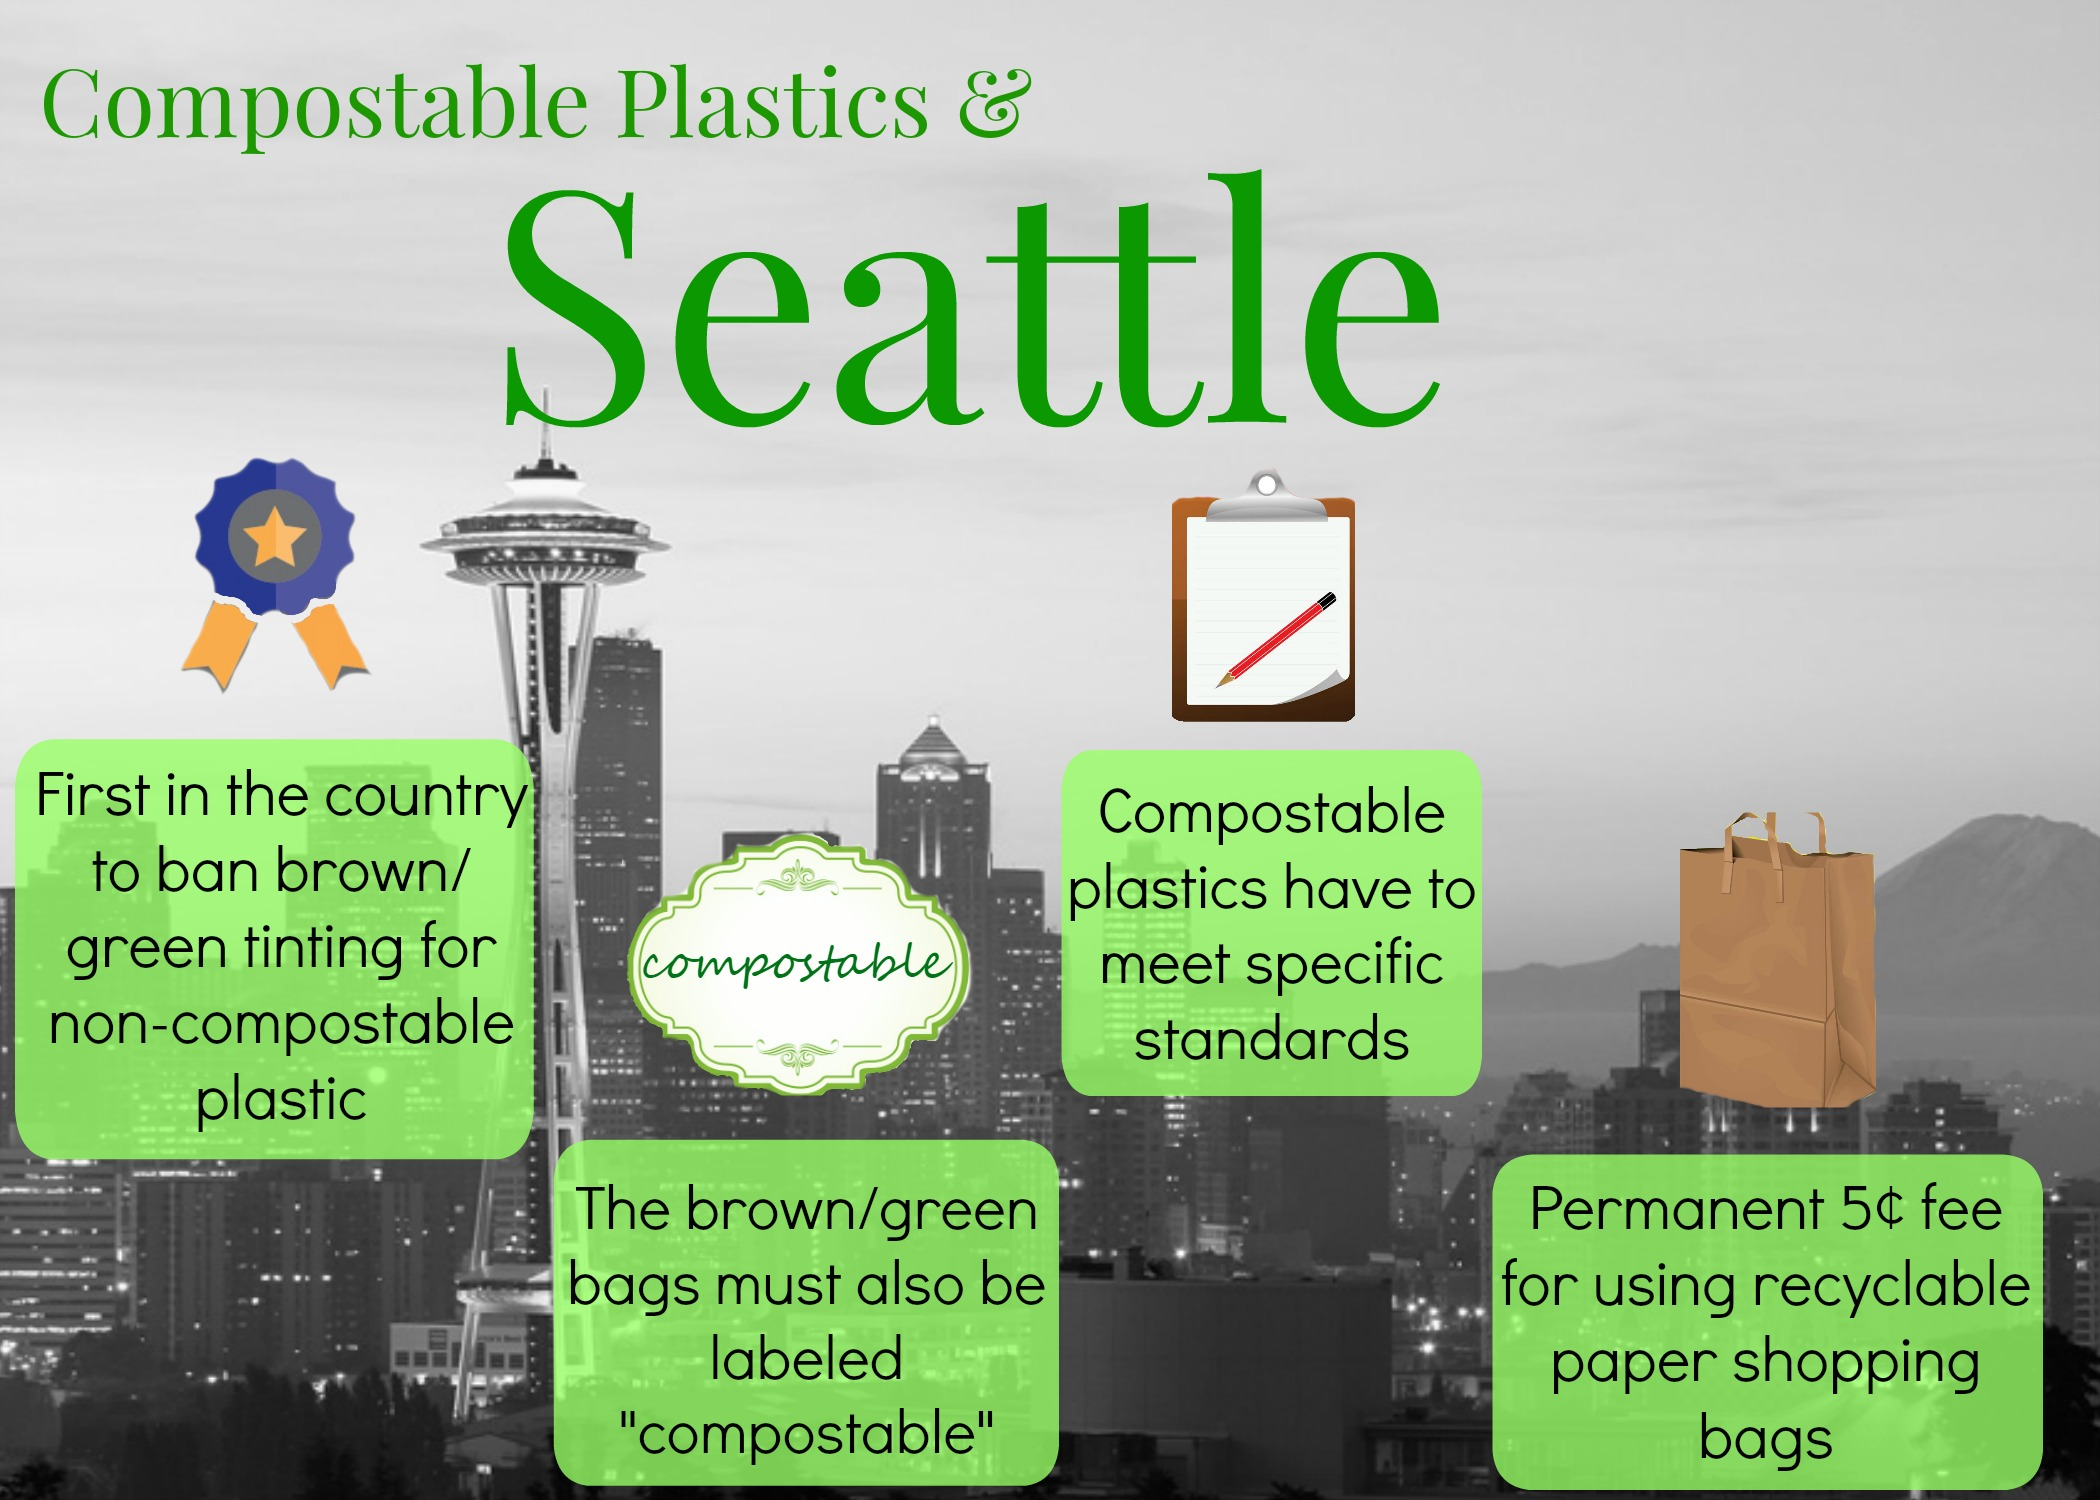 Seattle's law on compostable plastics